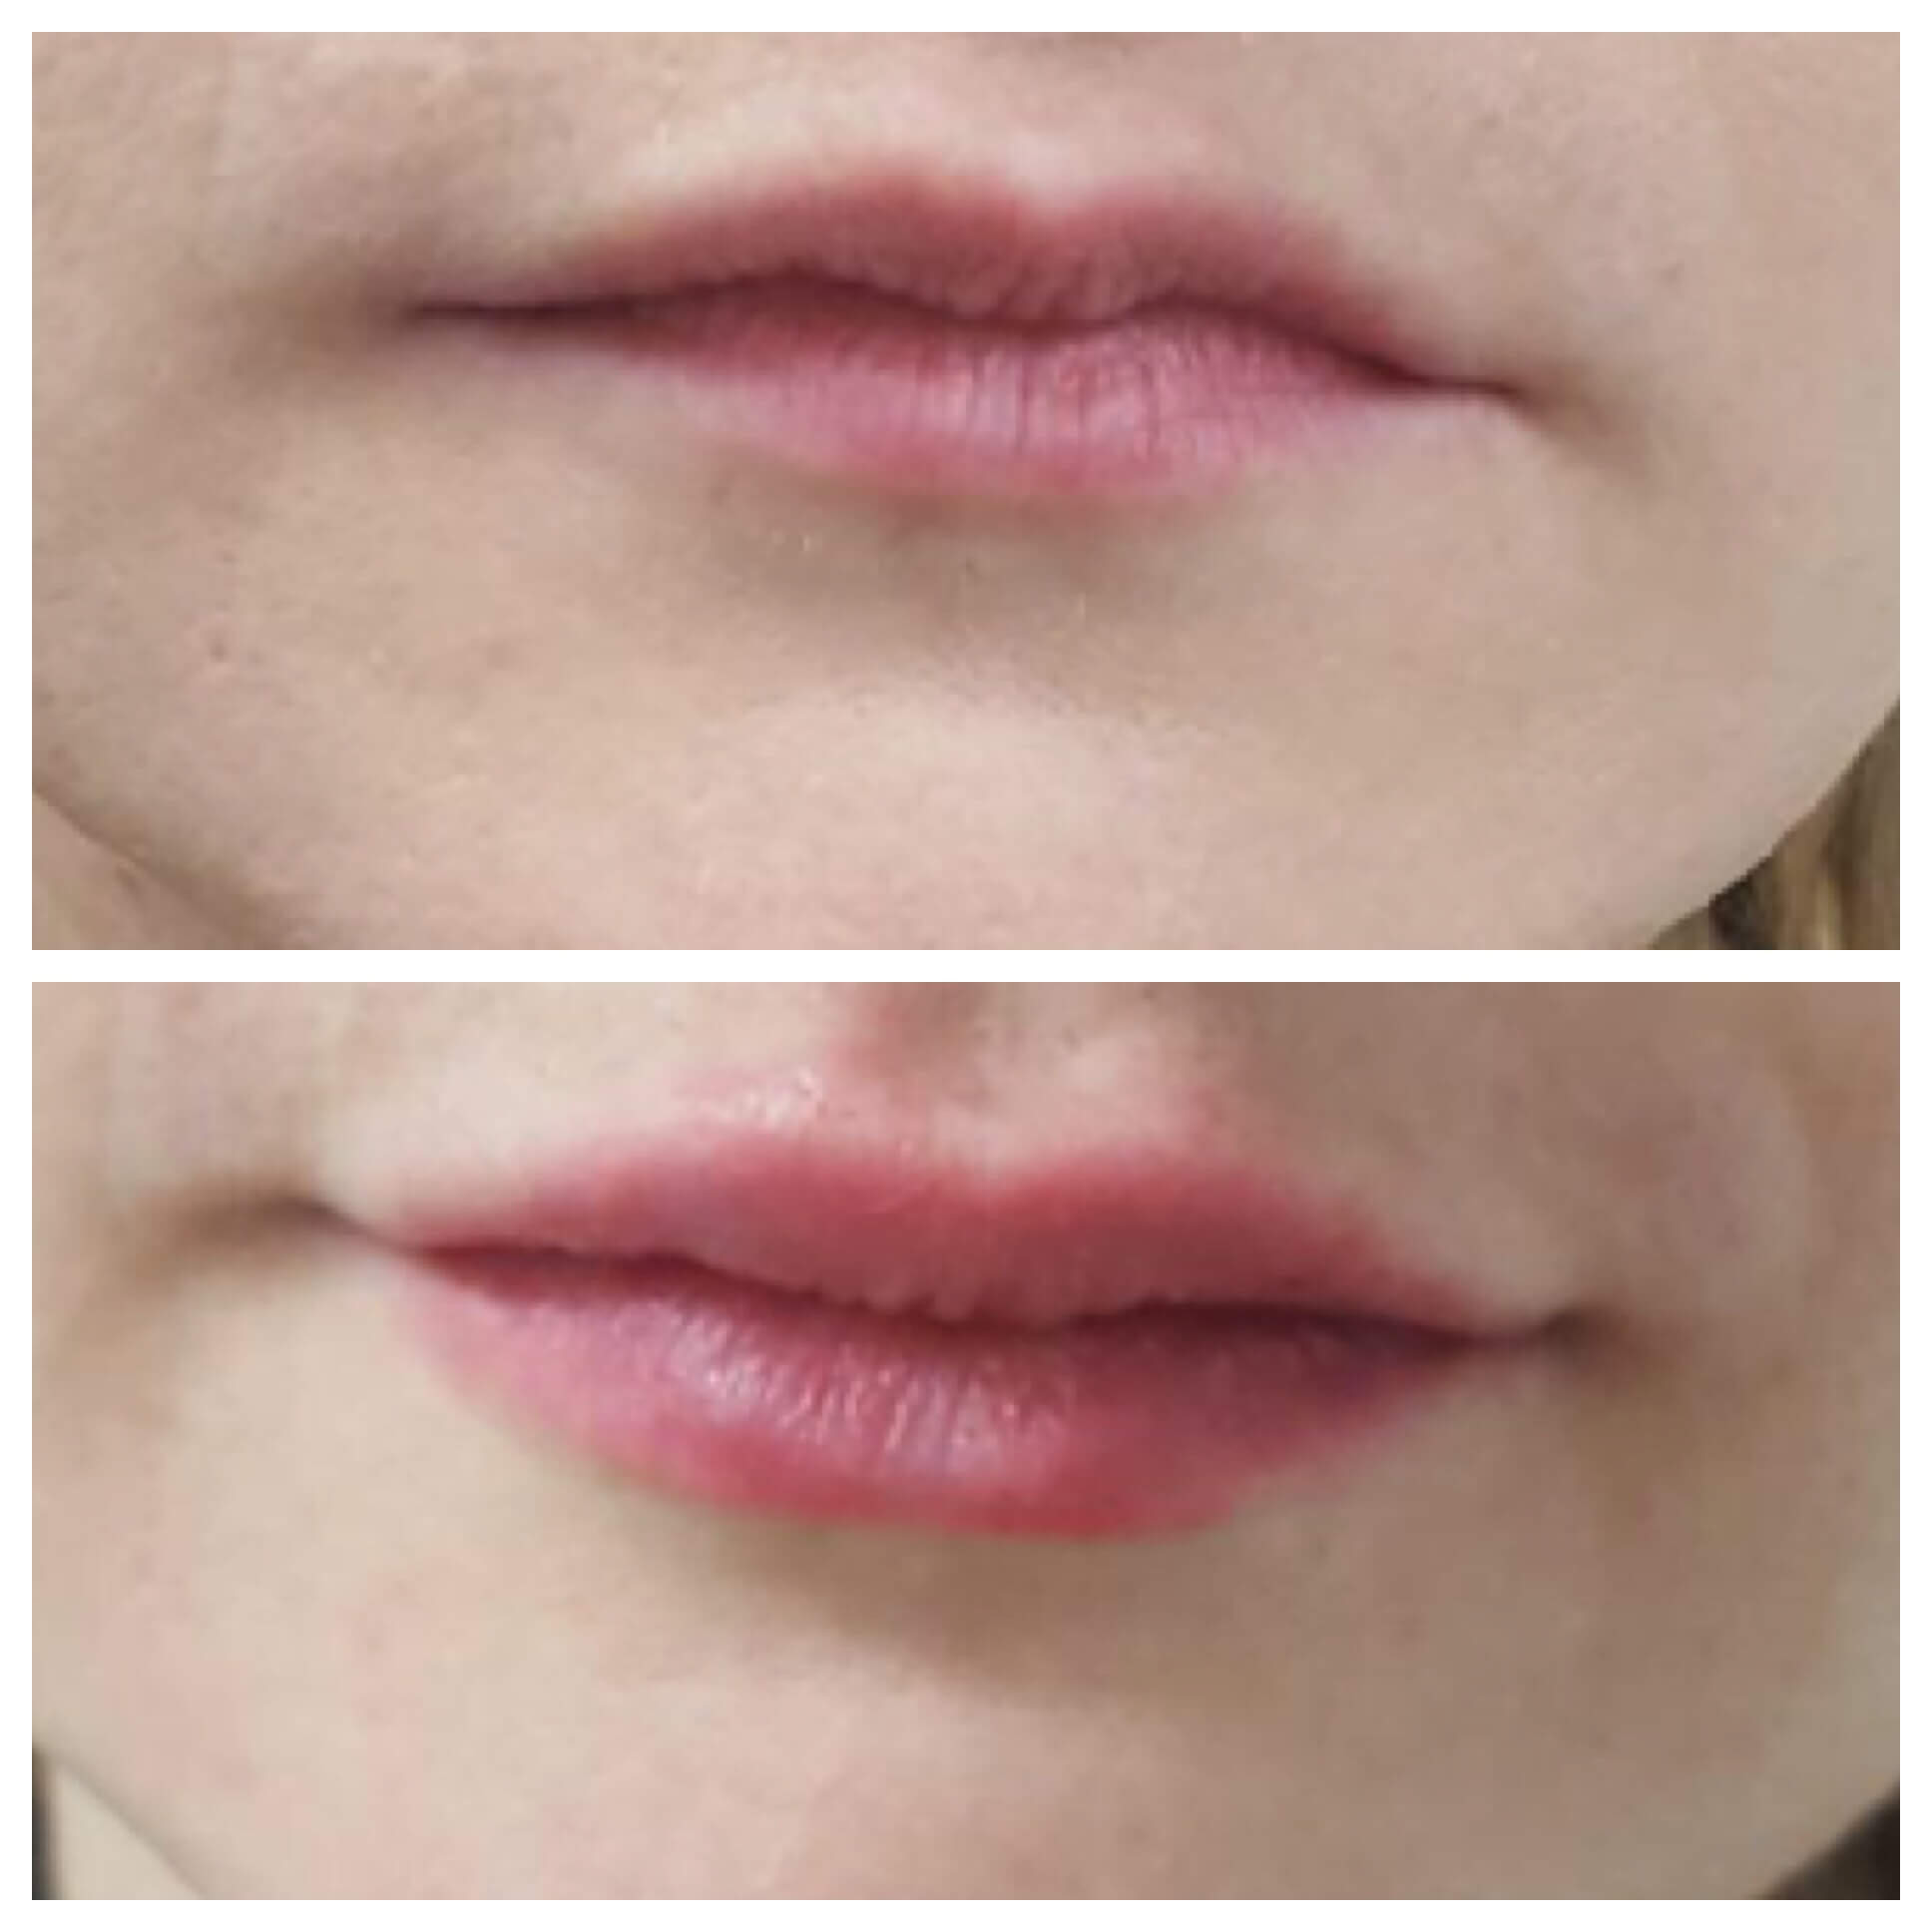 43 EASY TUTORIAL HOW TO MASSAGE LIP FILLERS EBOOK PDF